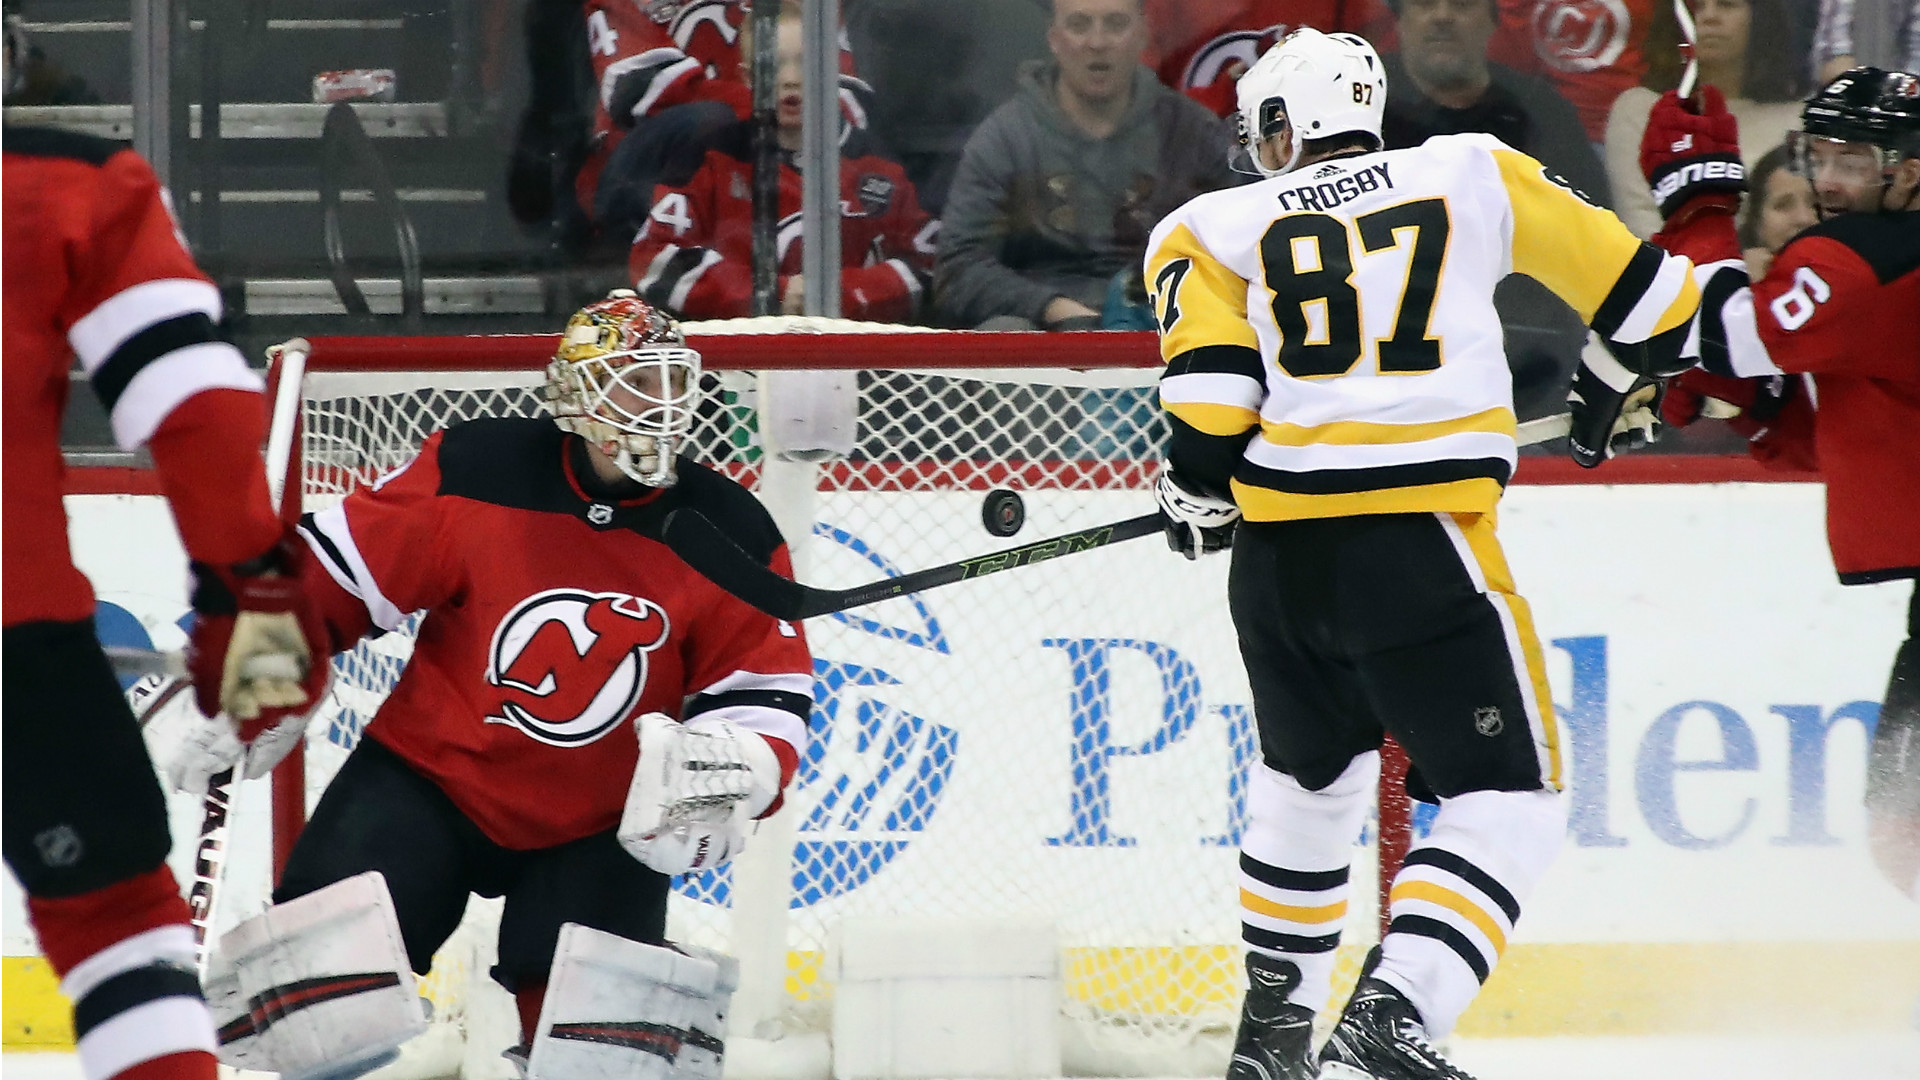 National Hockey League roundup: Crosby scores in OT for Penguins